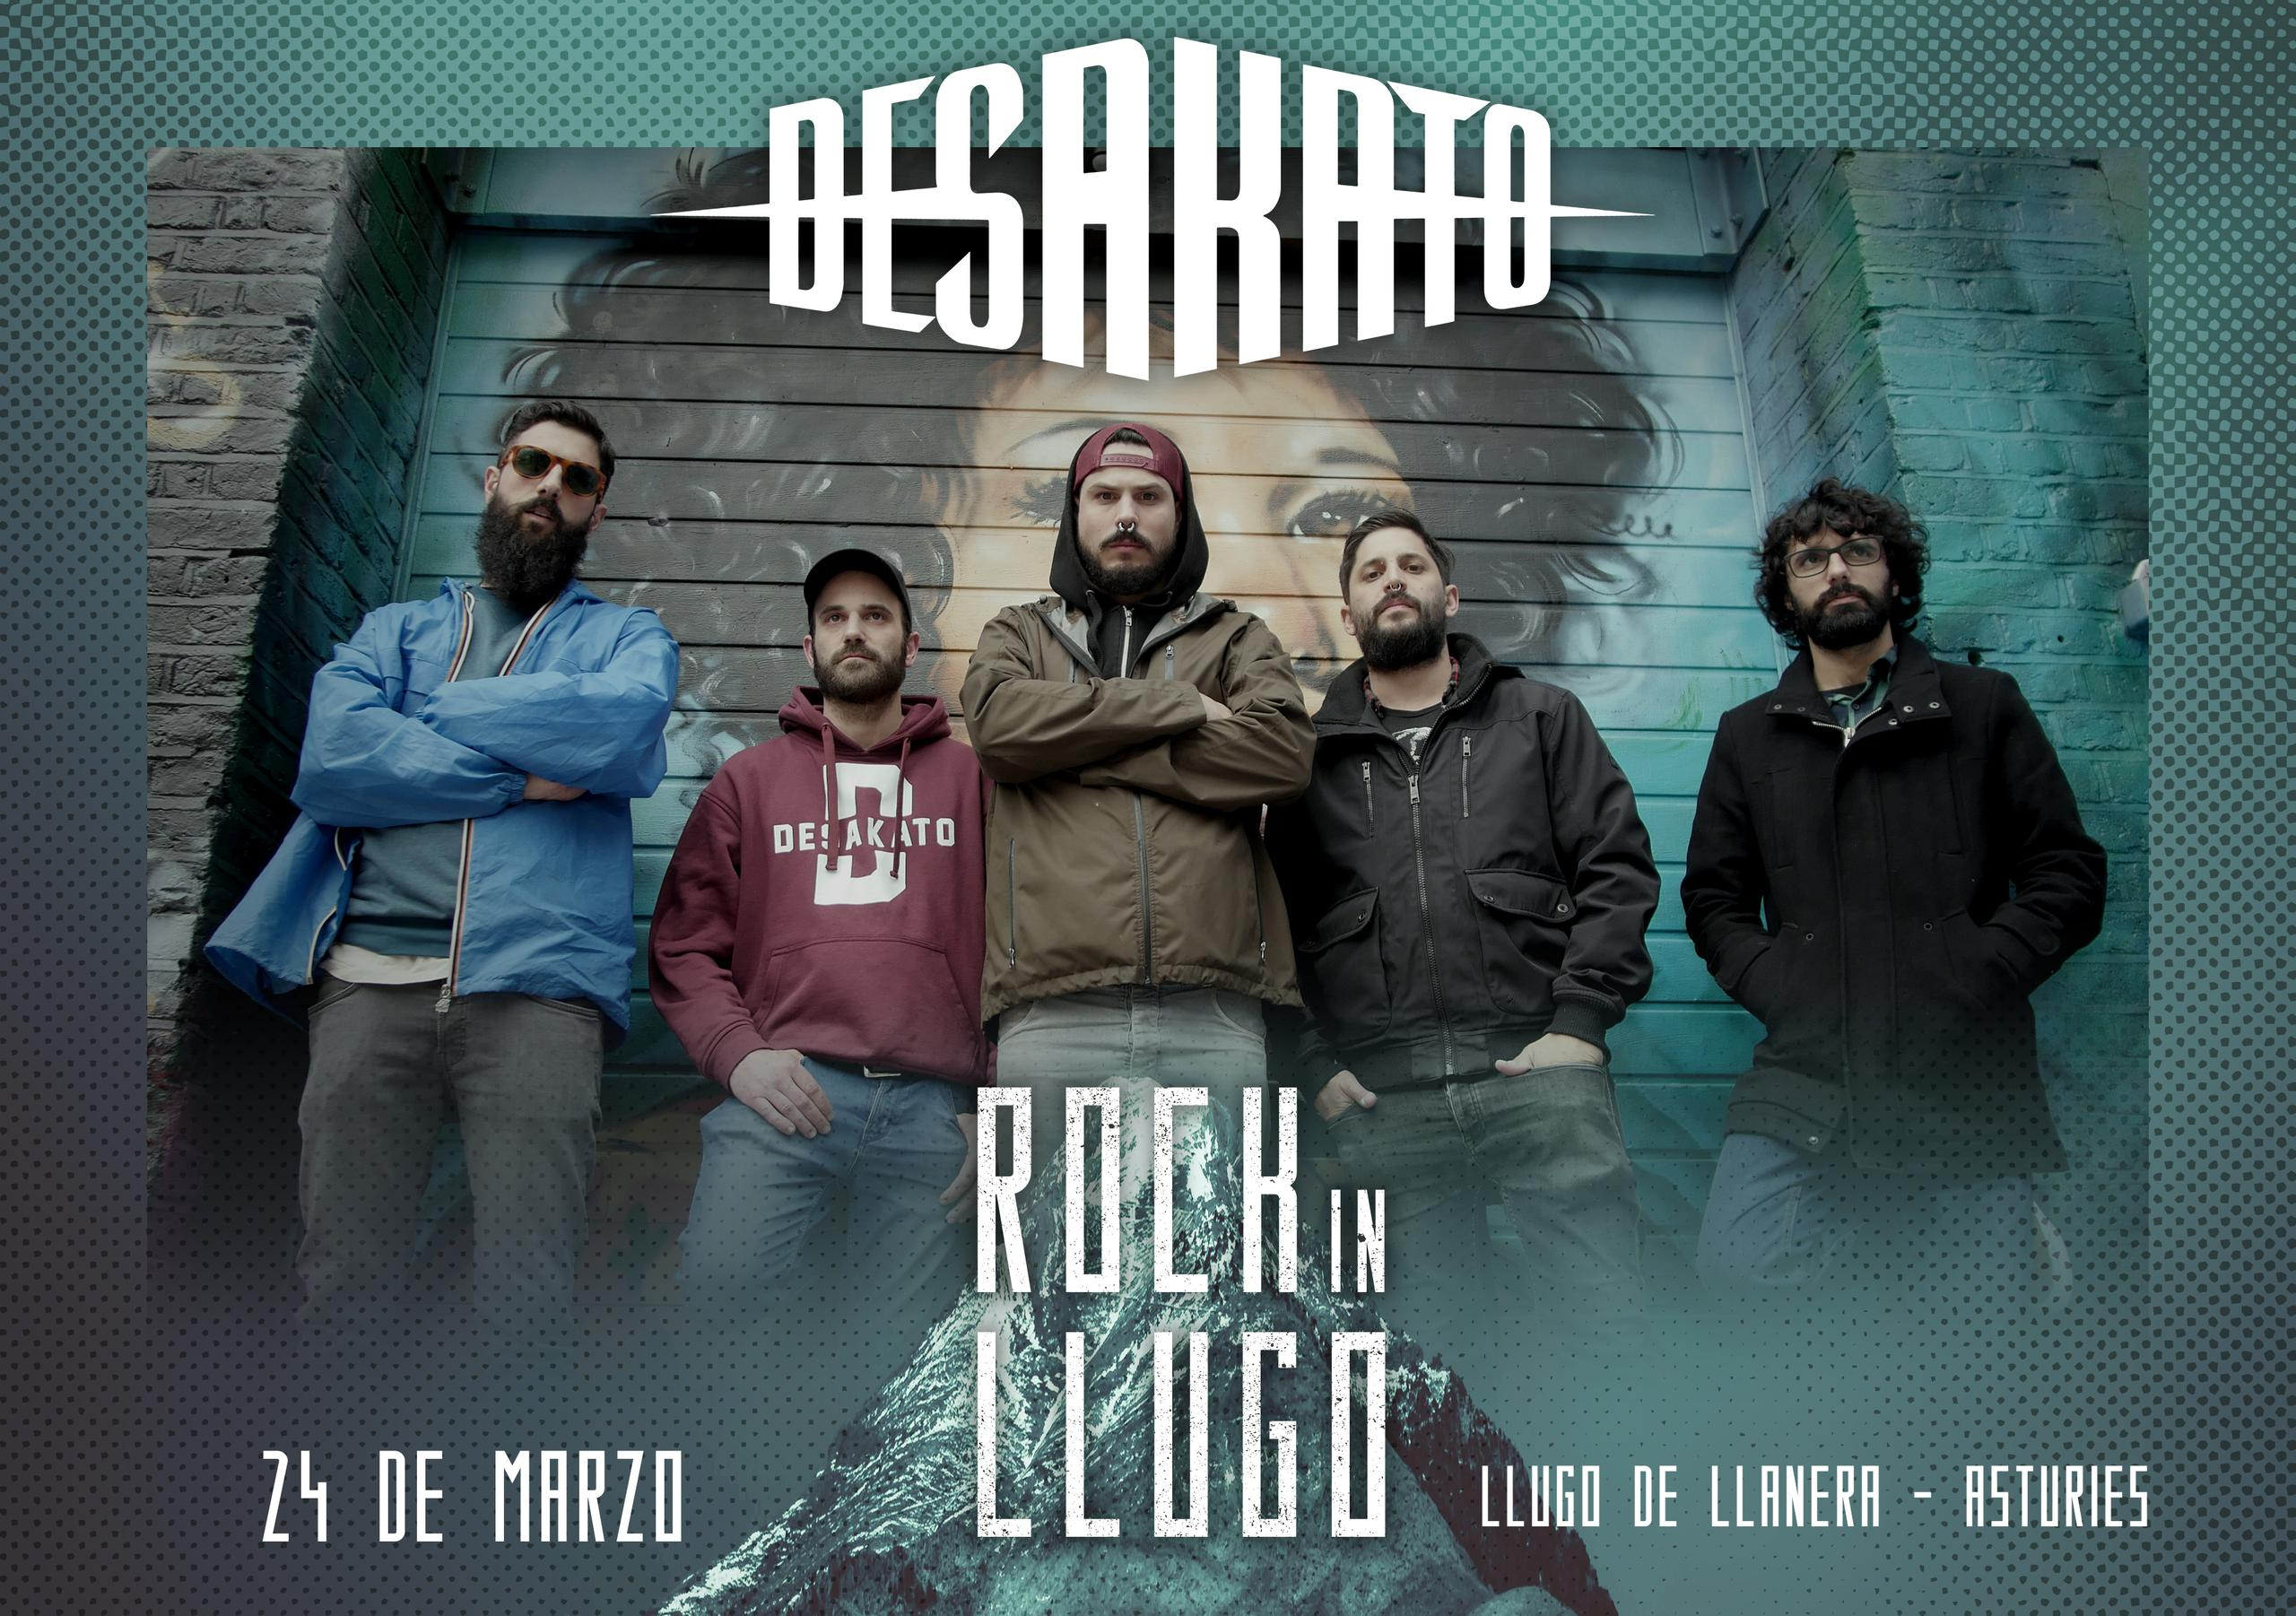 ¡¡Desakato estarán en el Rock in Llugo!!